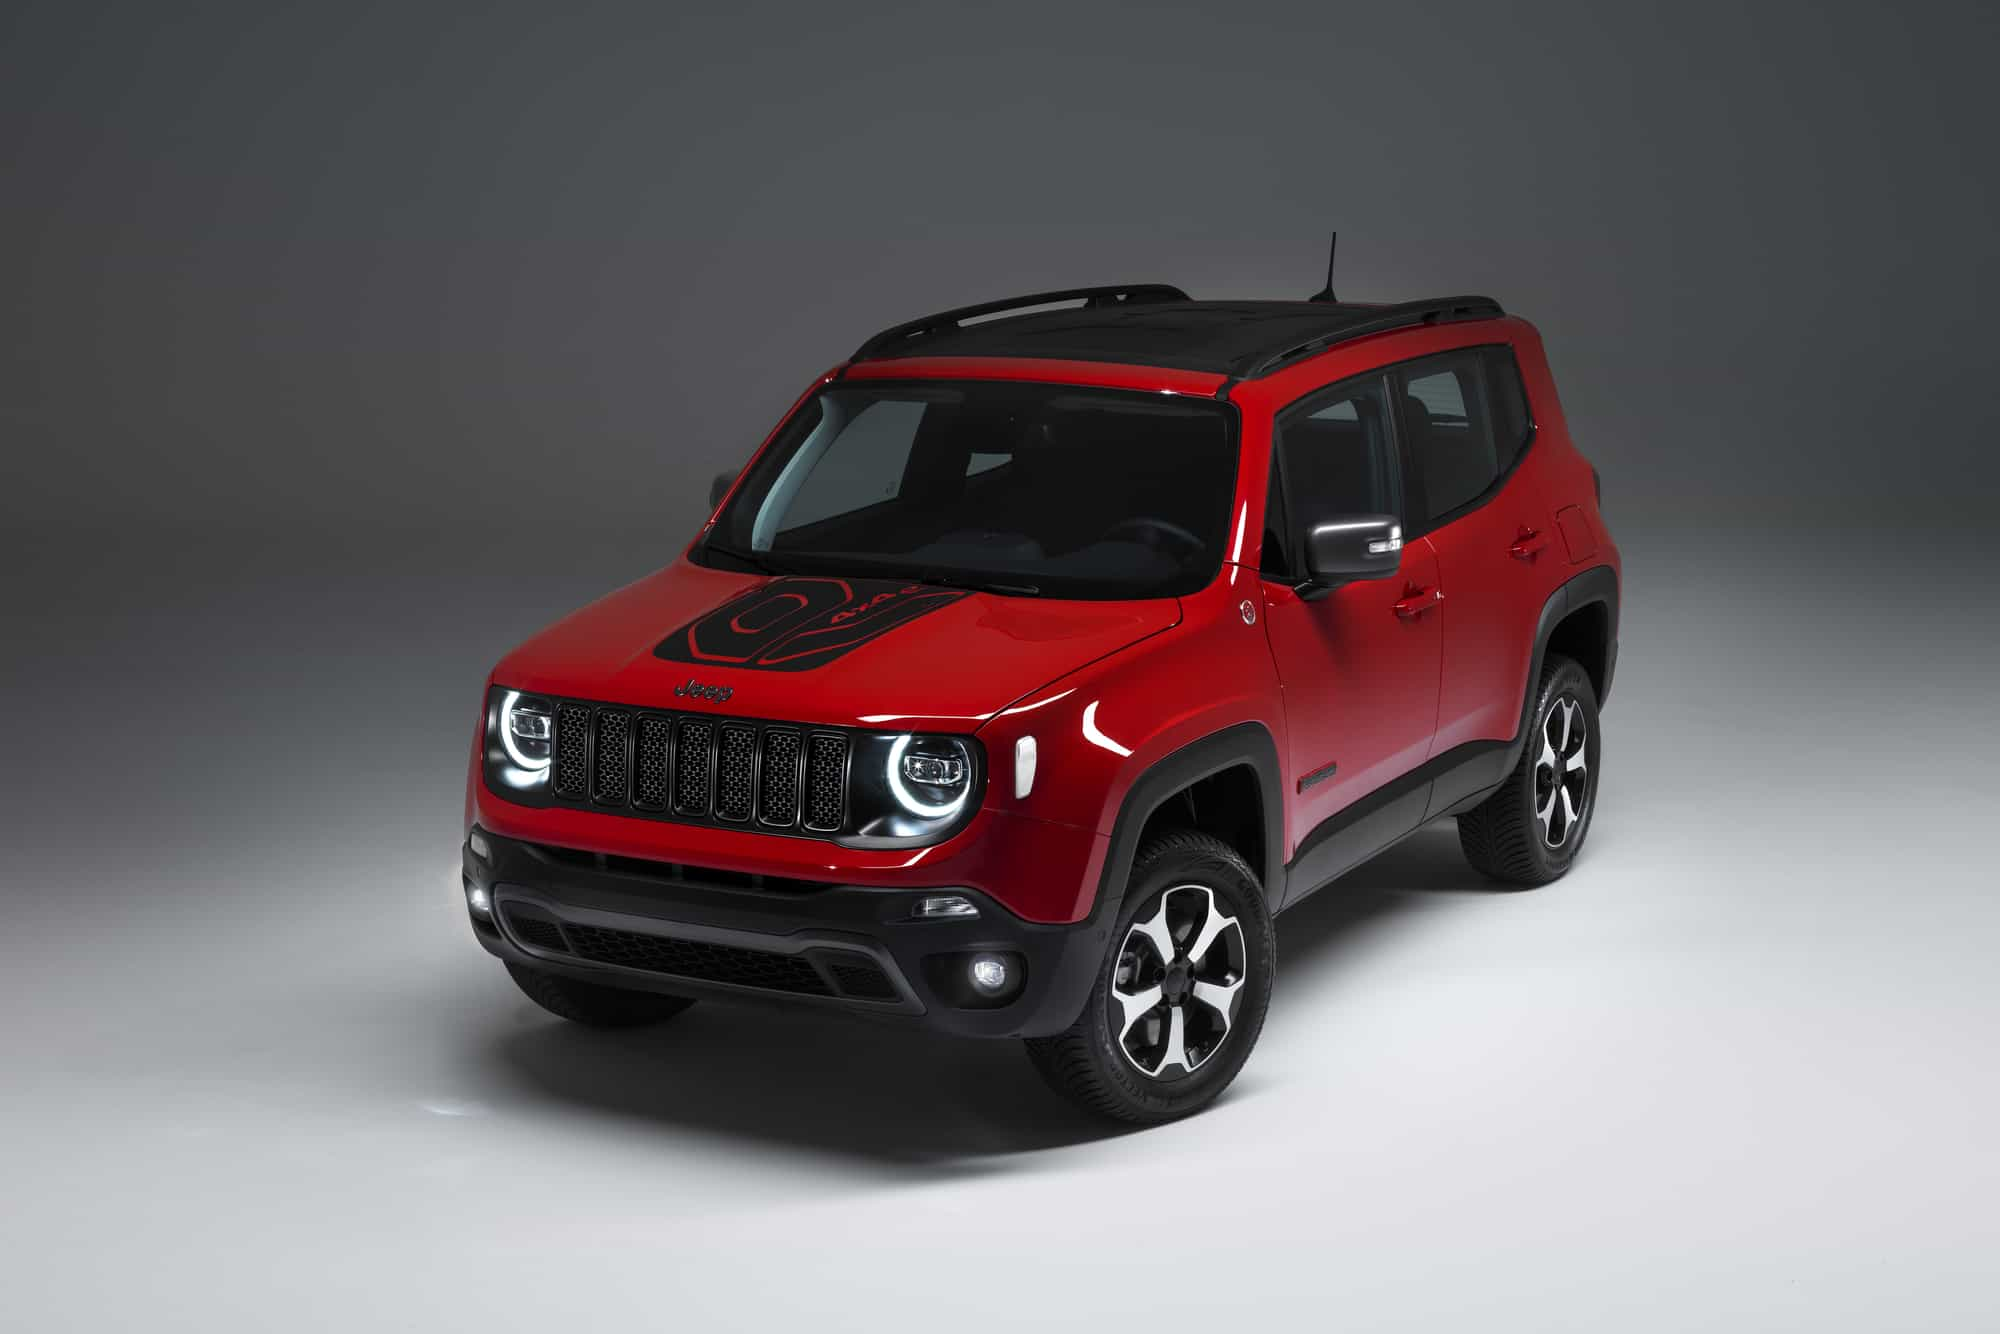 Jeep Renegade Plug-in Hybrid 11